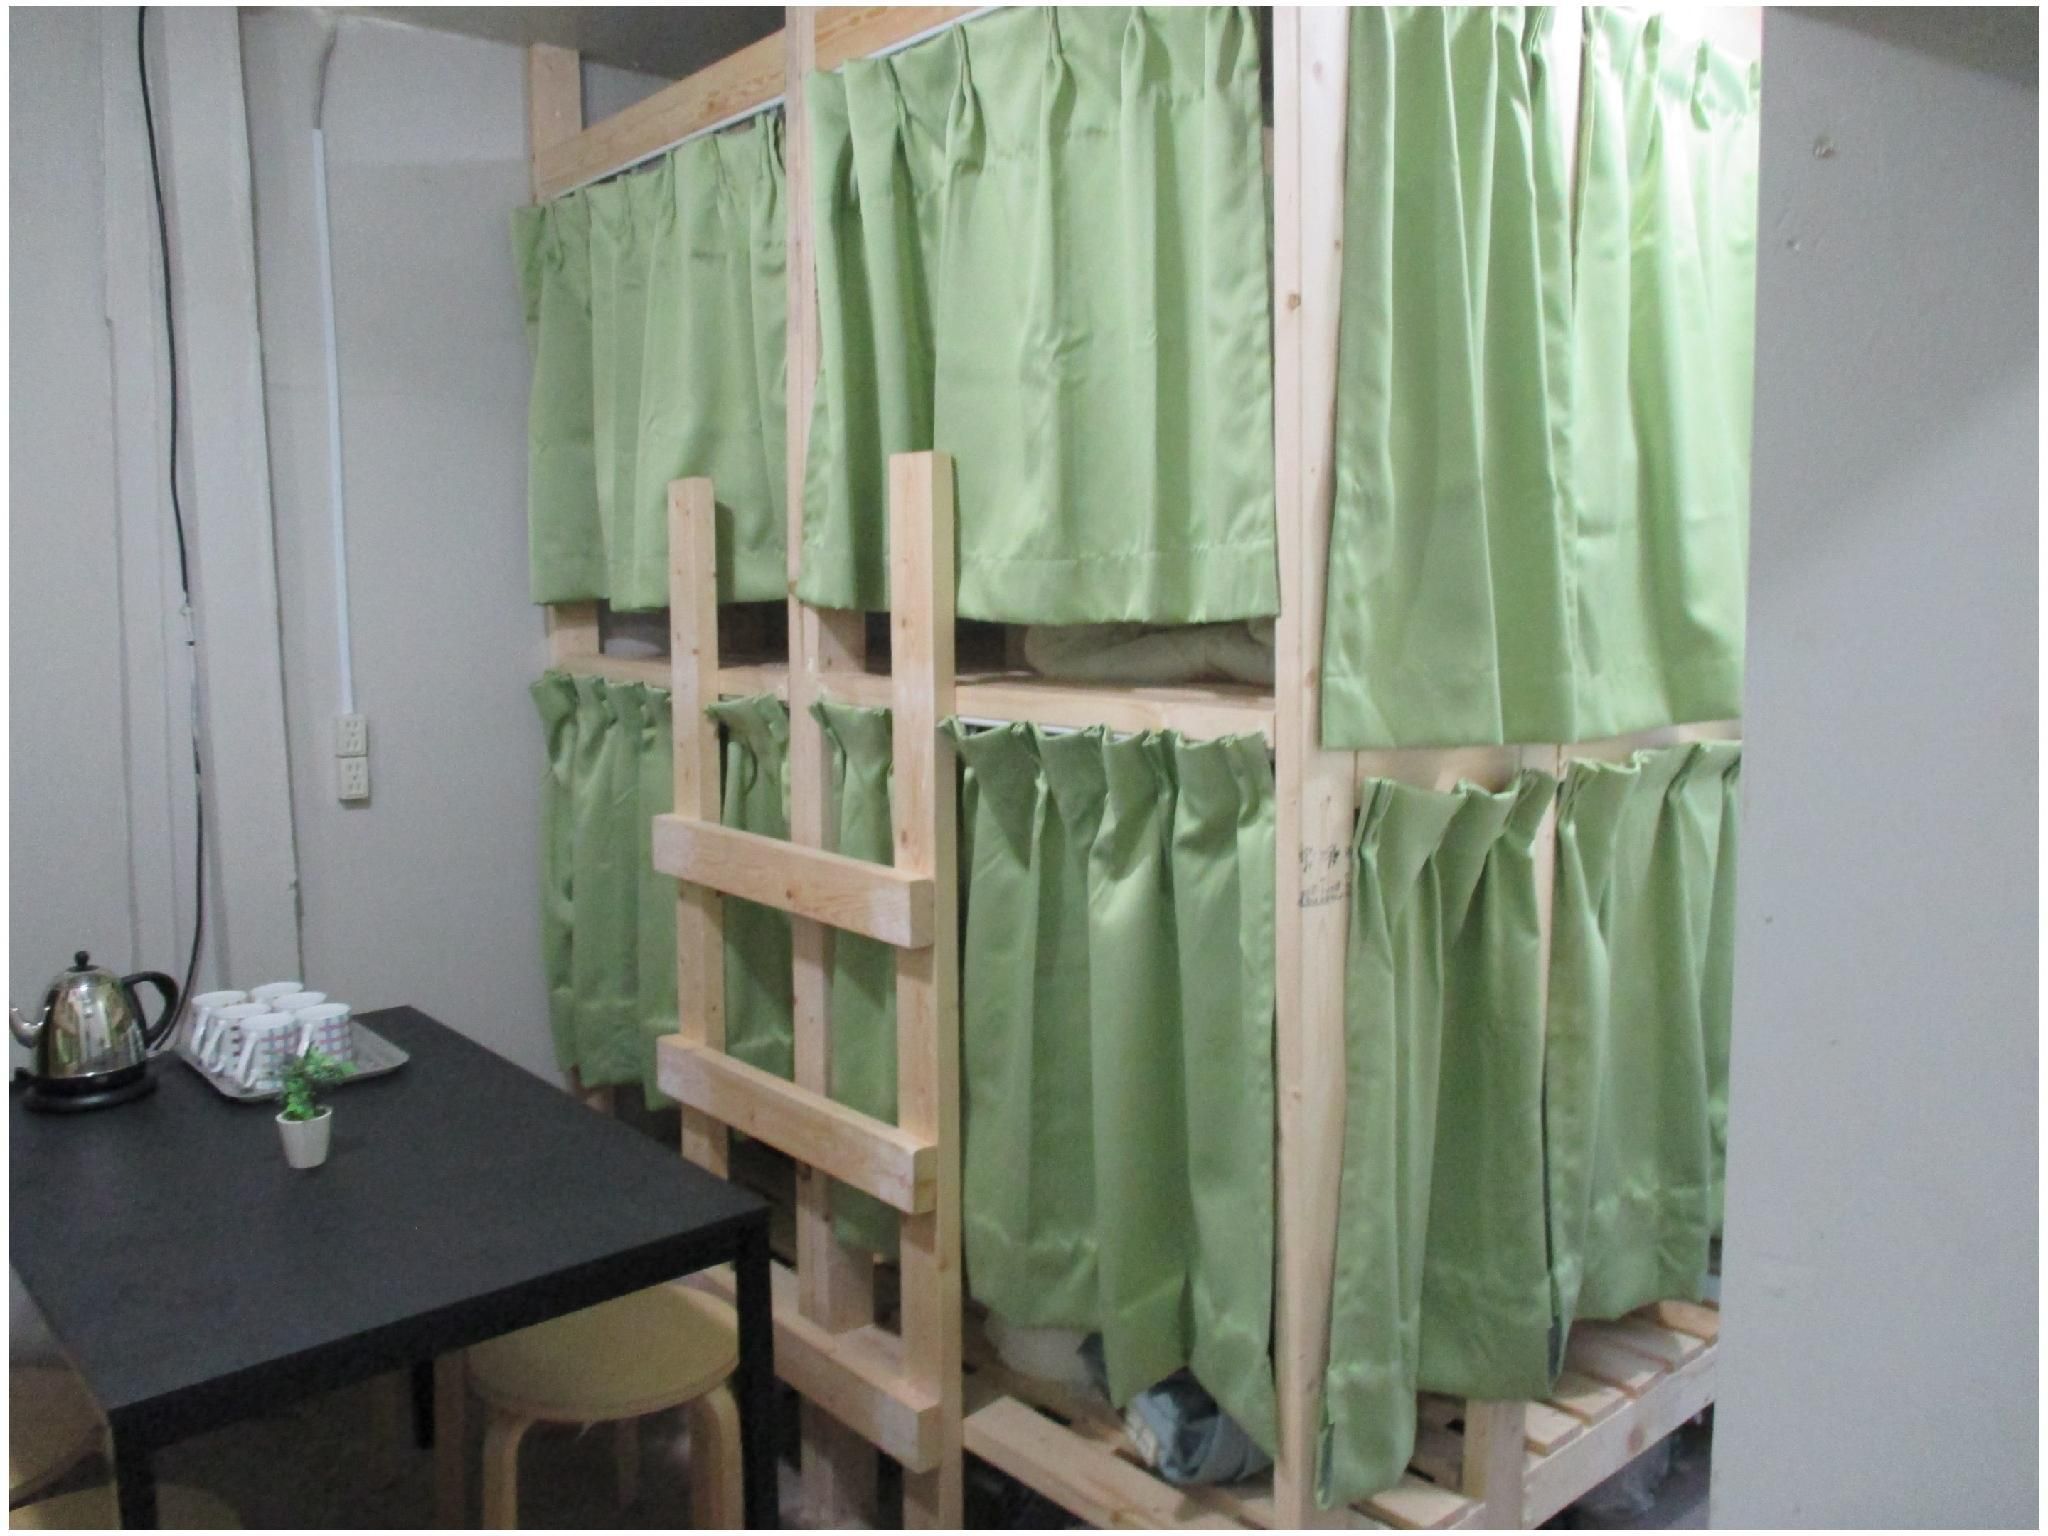 合住房(雙層床) (Dormitory Room (Bunk Beds))